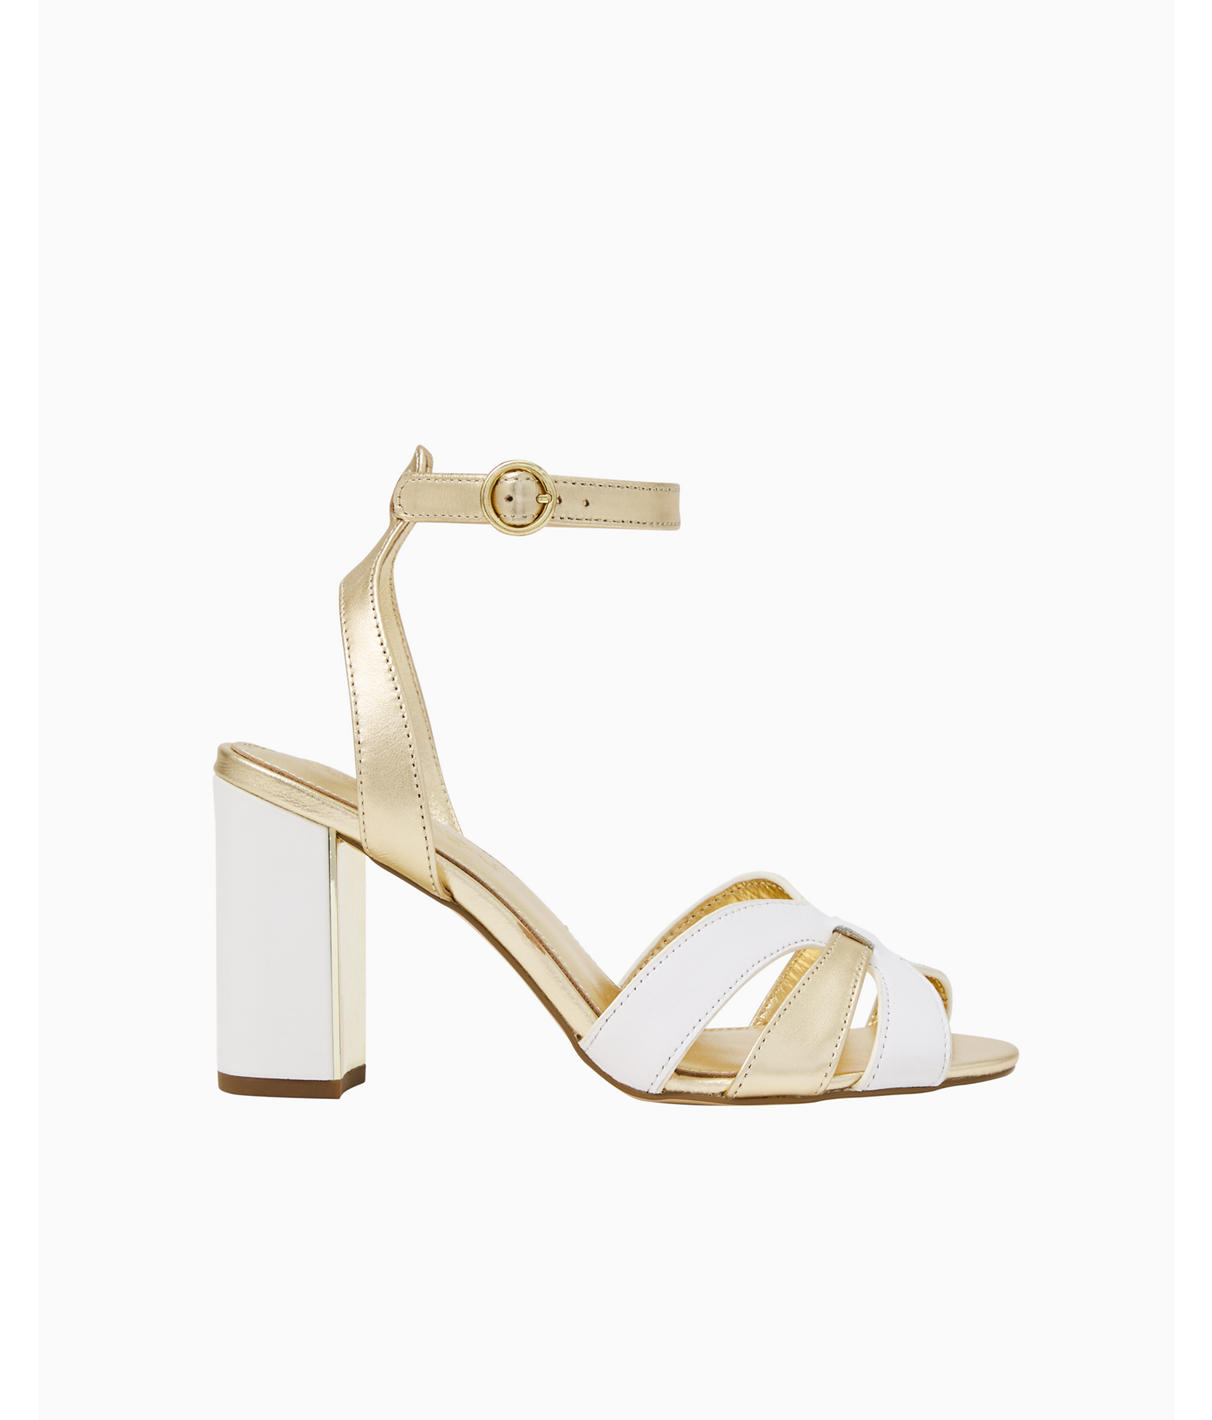 Lilly Pulitzer Alana Sandal In Resort White